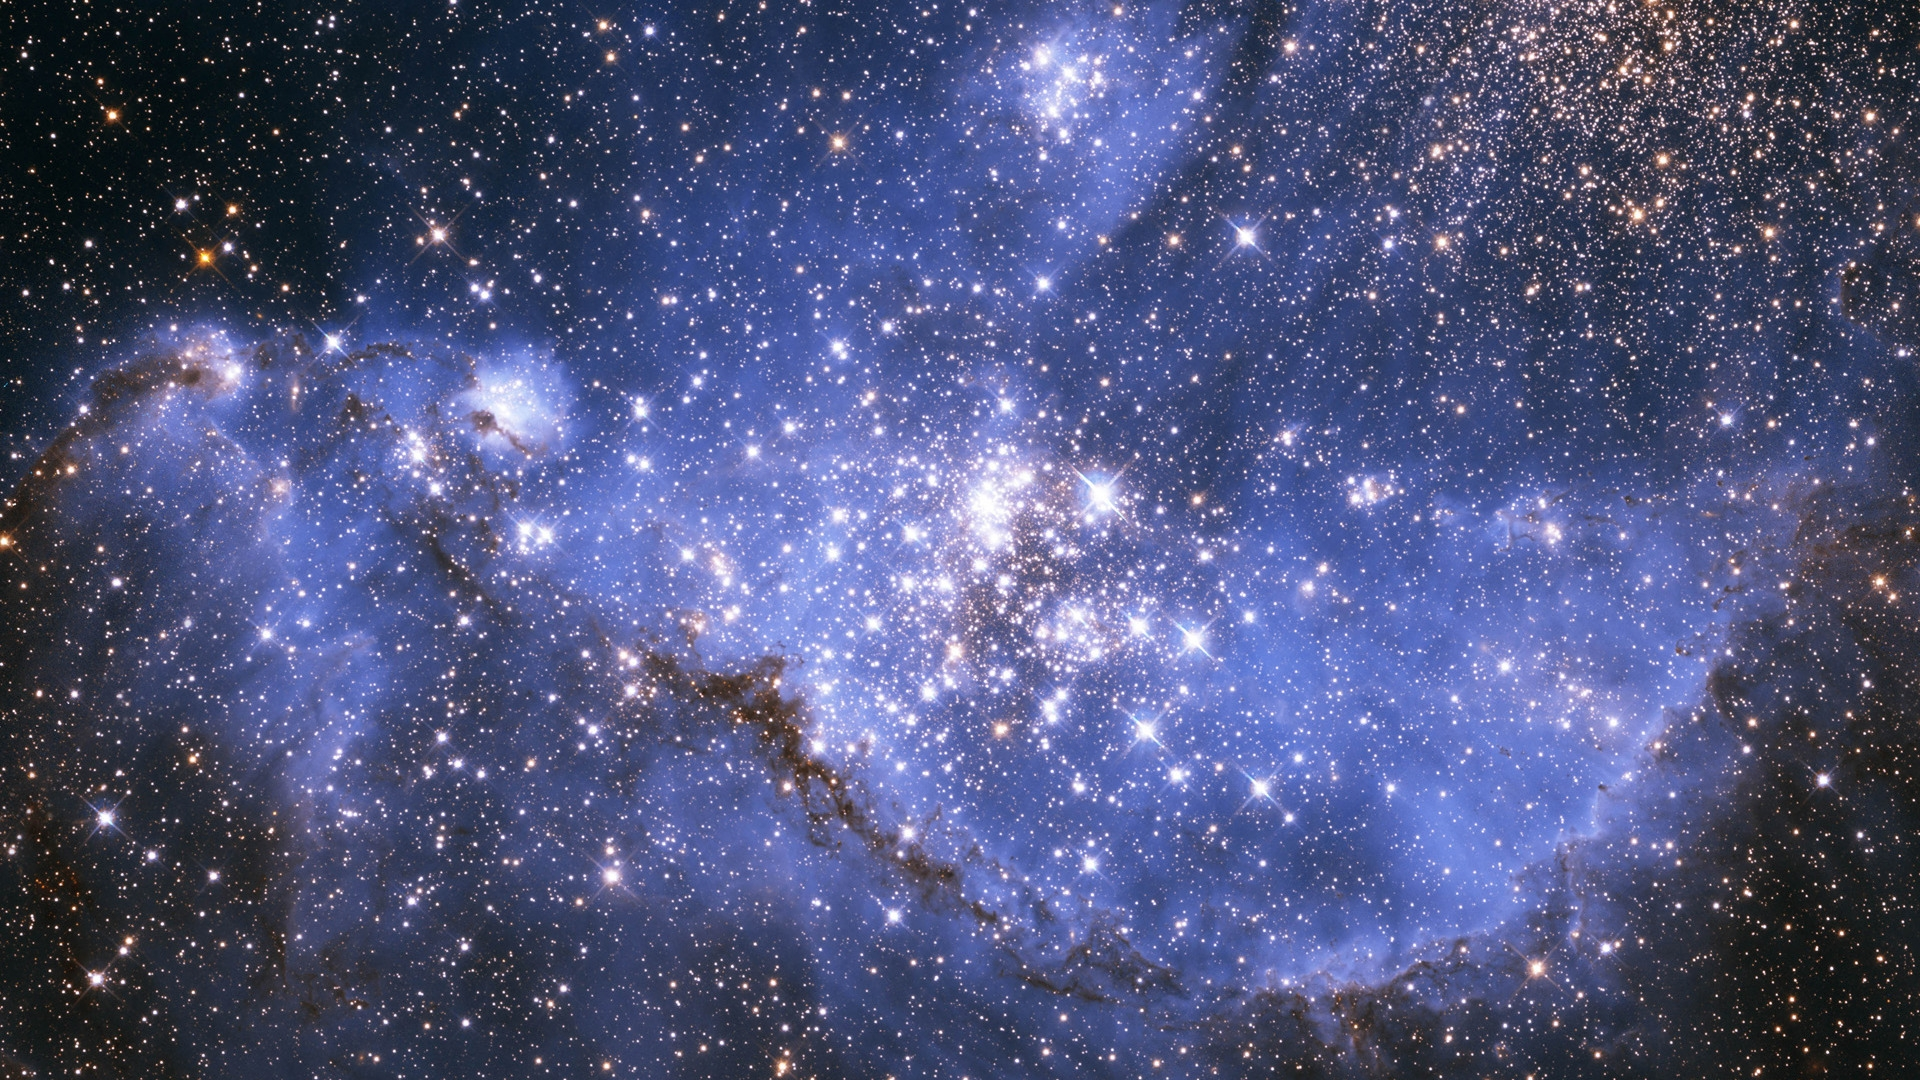 Stars backgrounds  HD Background Images  Photos  Pictures  YL Computing